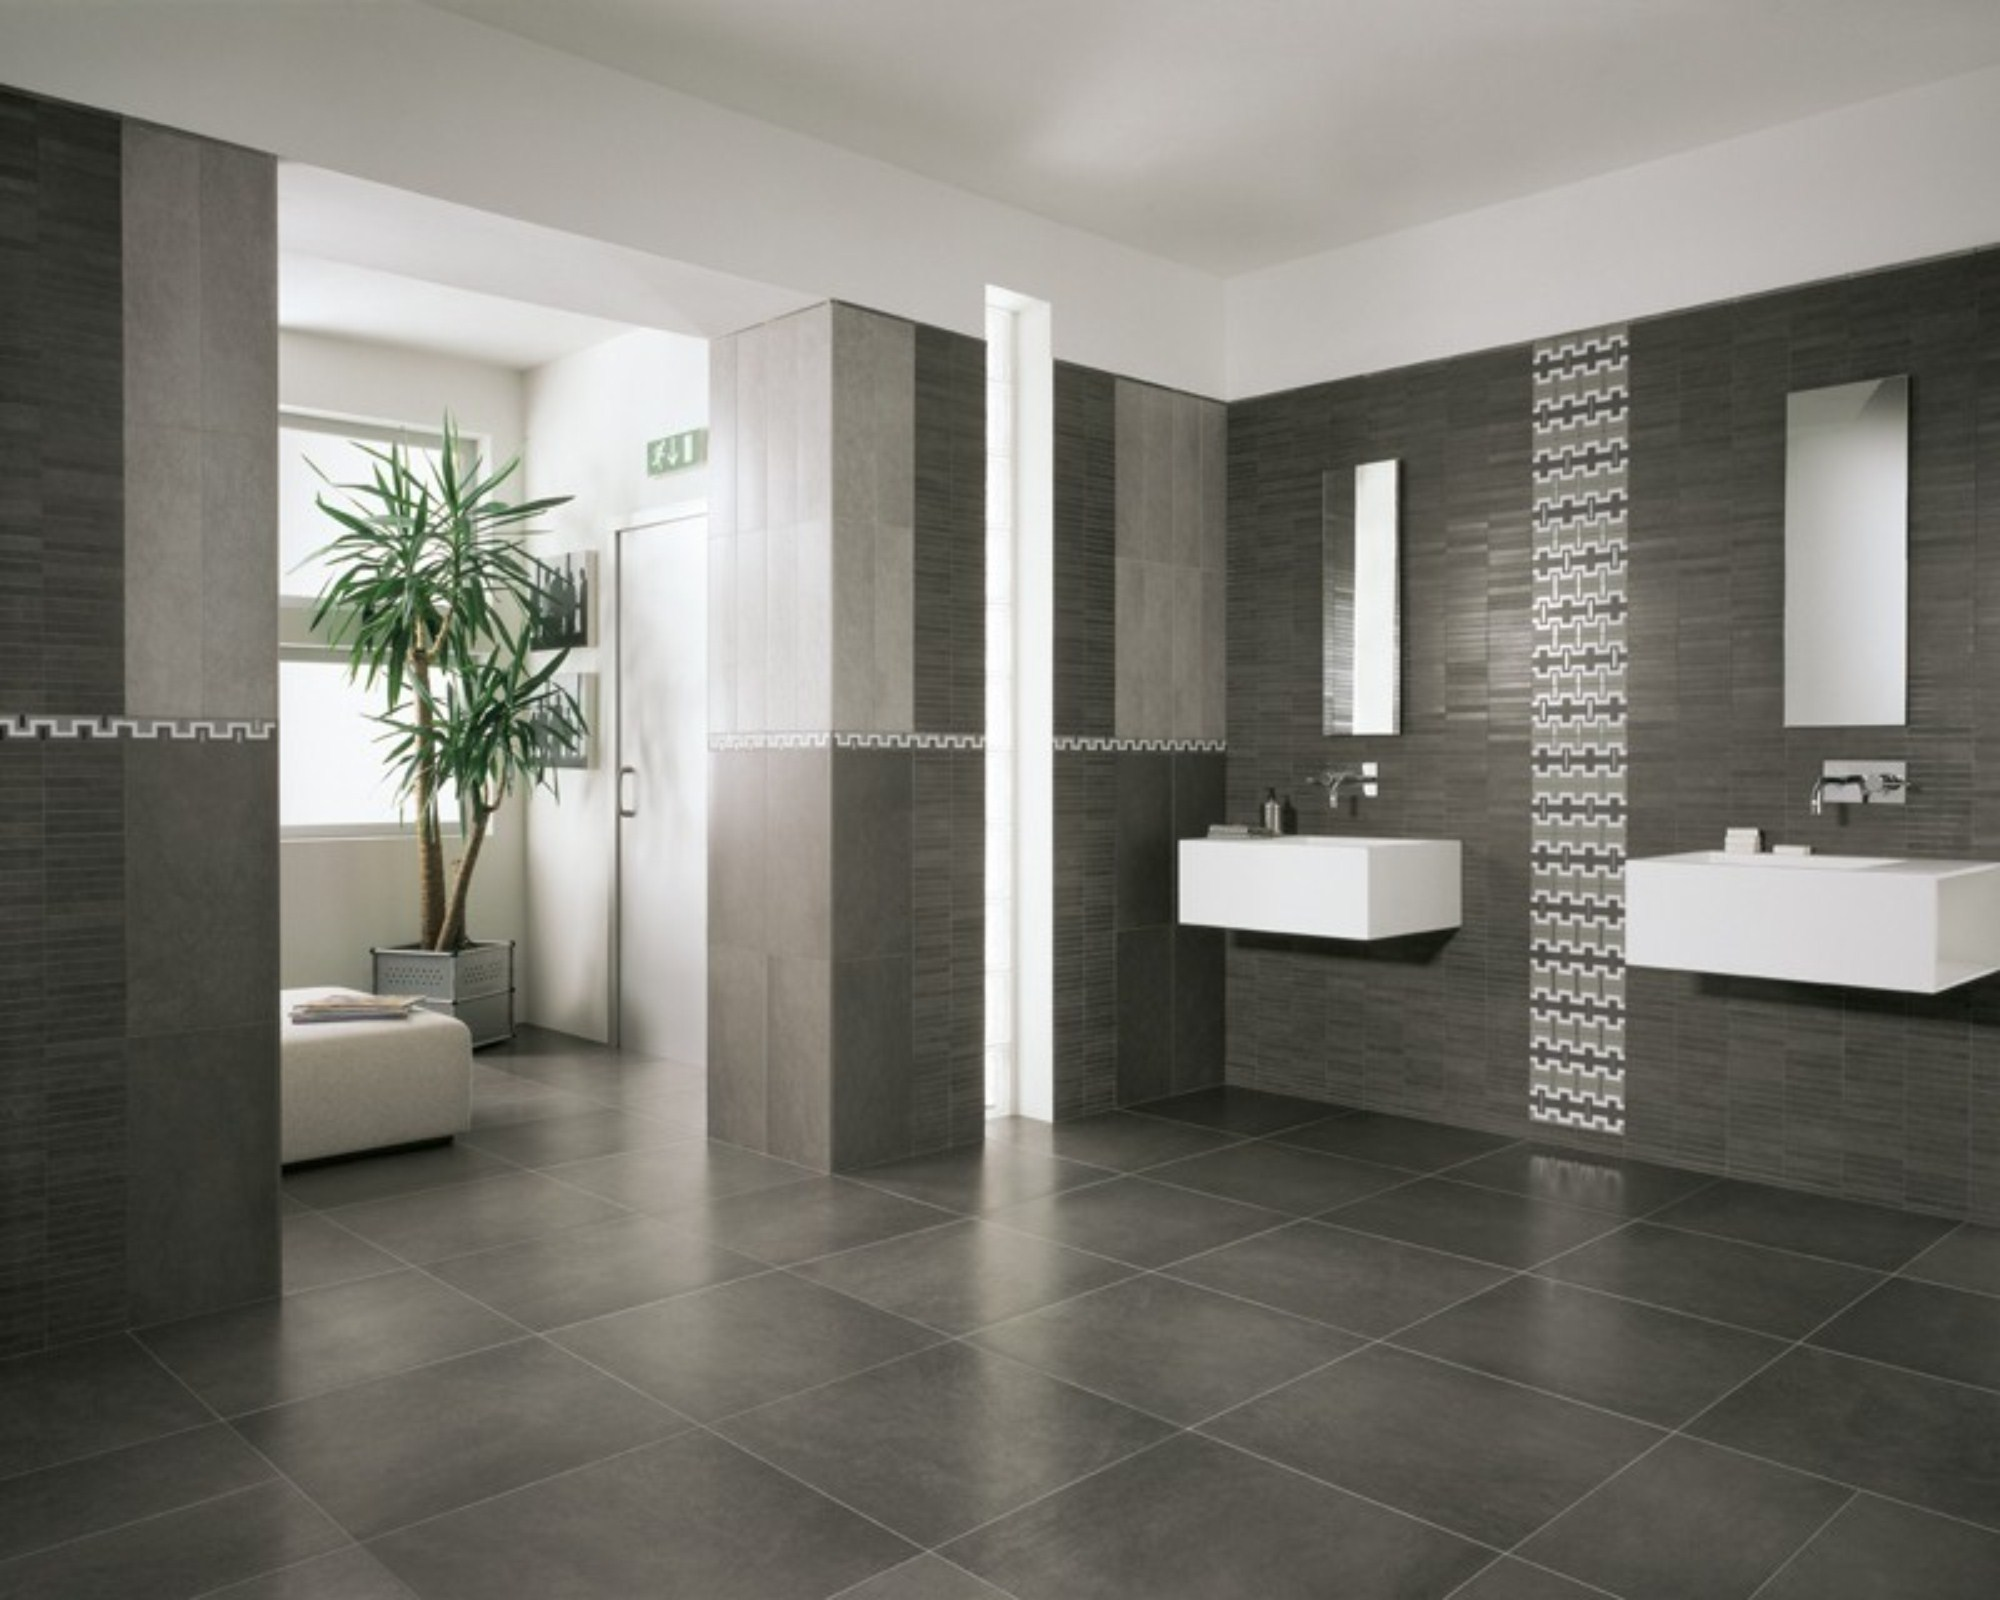 Grey-Bathroom-Floor-Tiles-with-Two-Wall-Sinks-and-Mirror